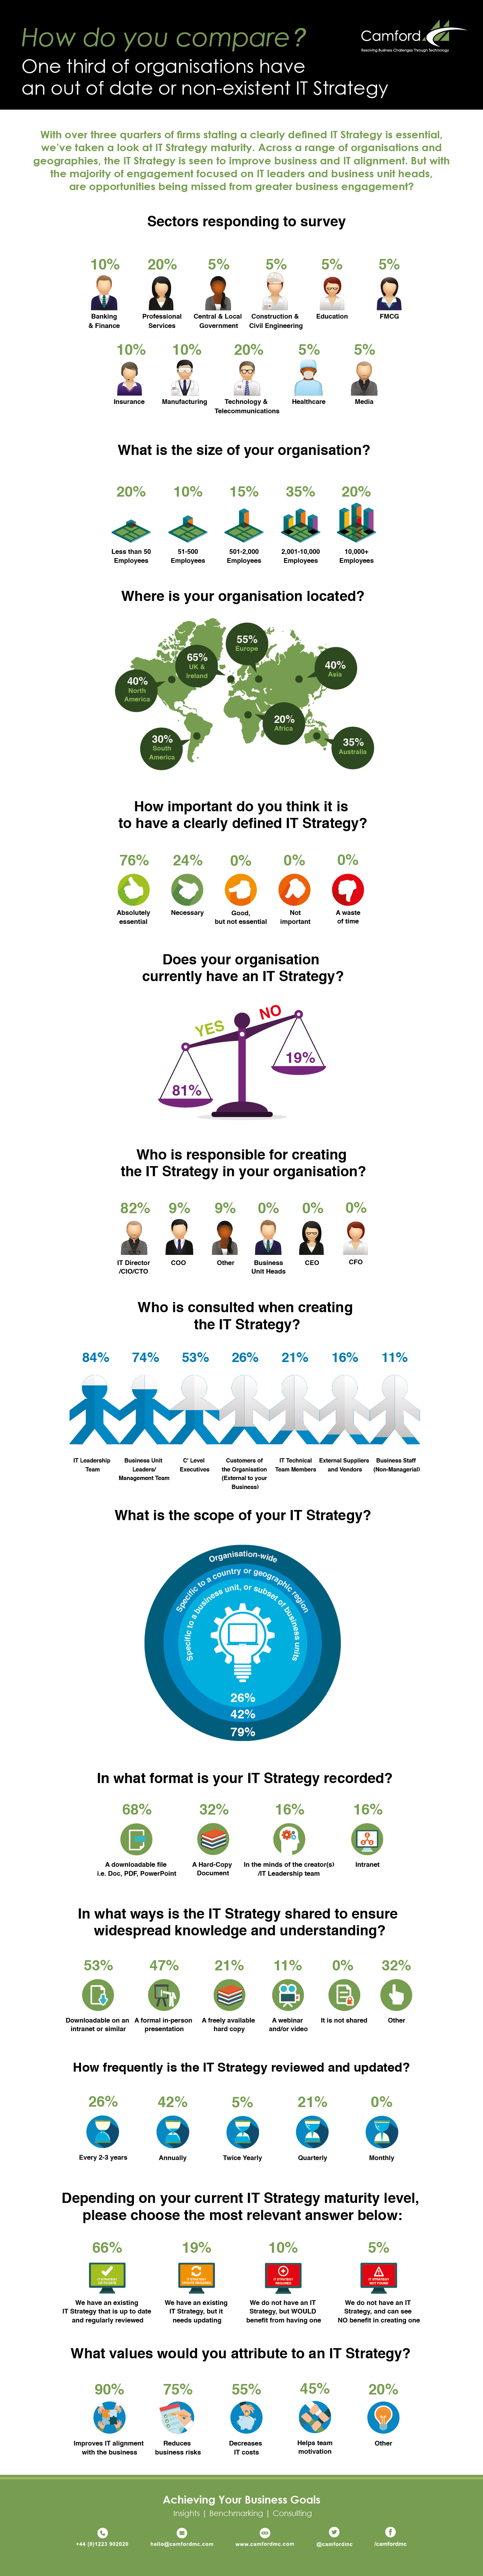 CMC IT Strategy Maturity - How do you compare.jpg